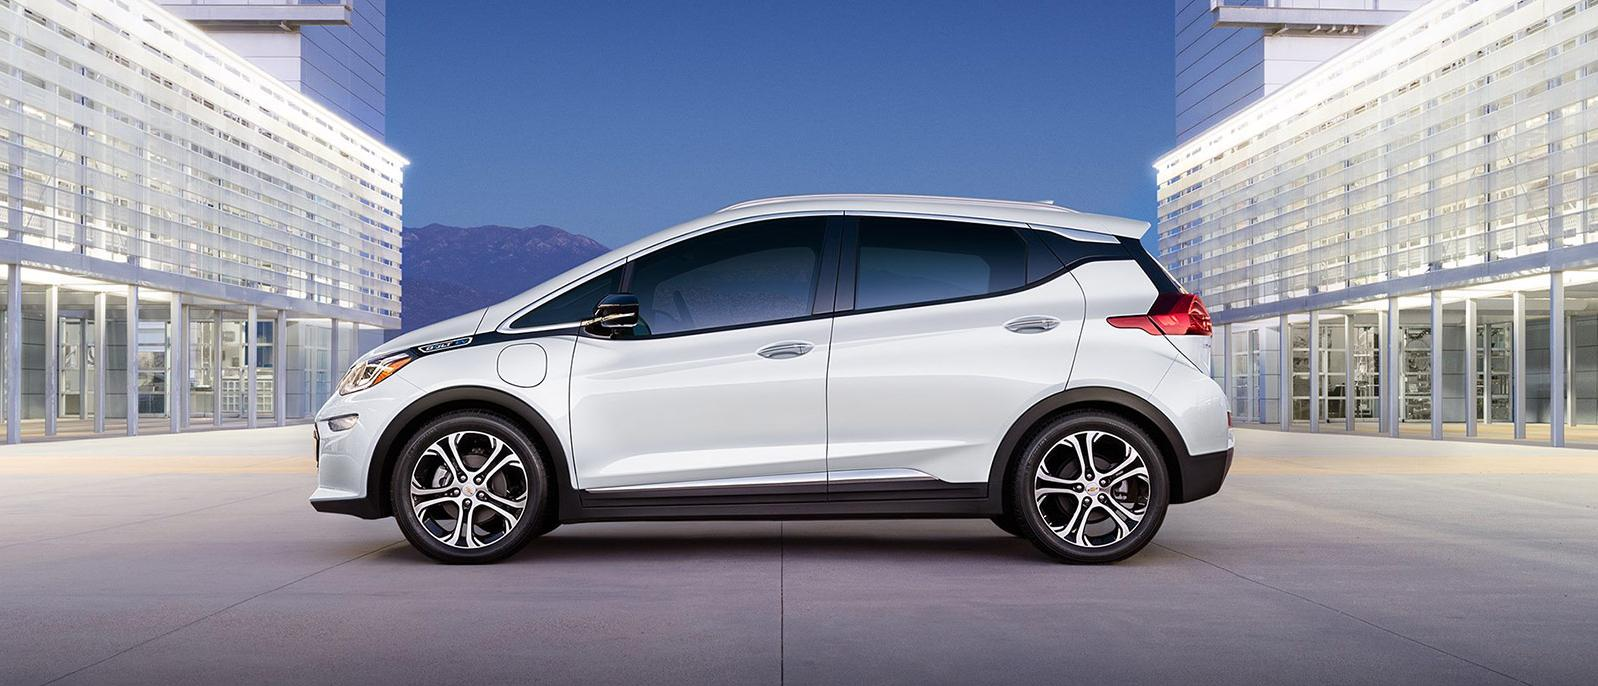 73 The 2019 Chevy Bolt New Concept